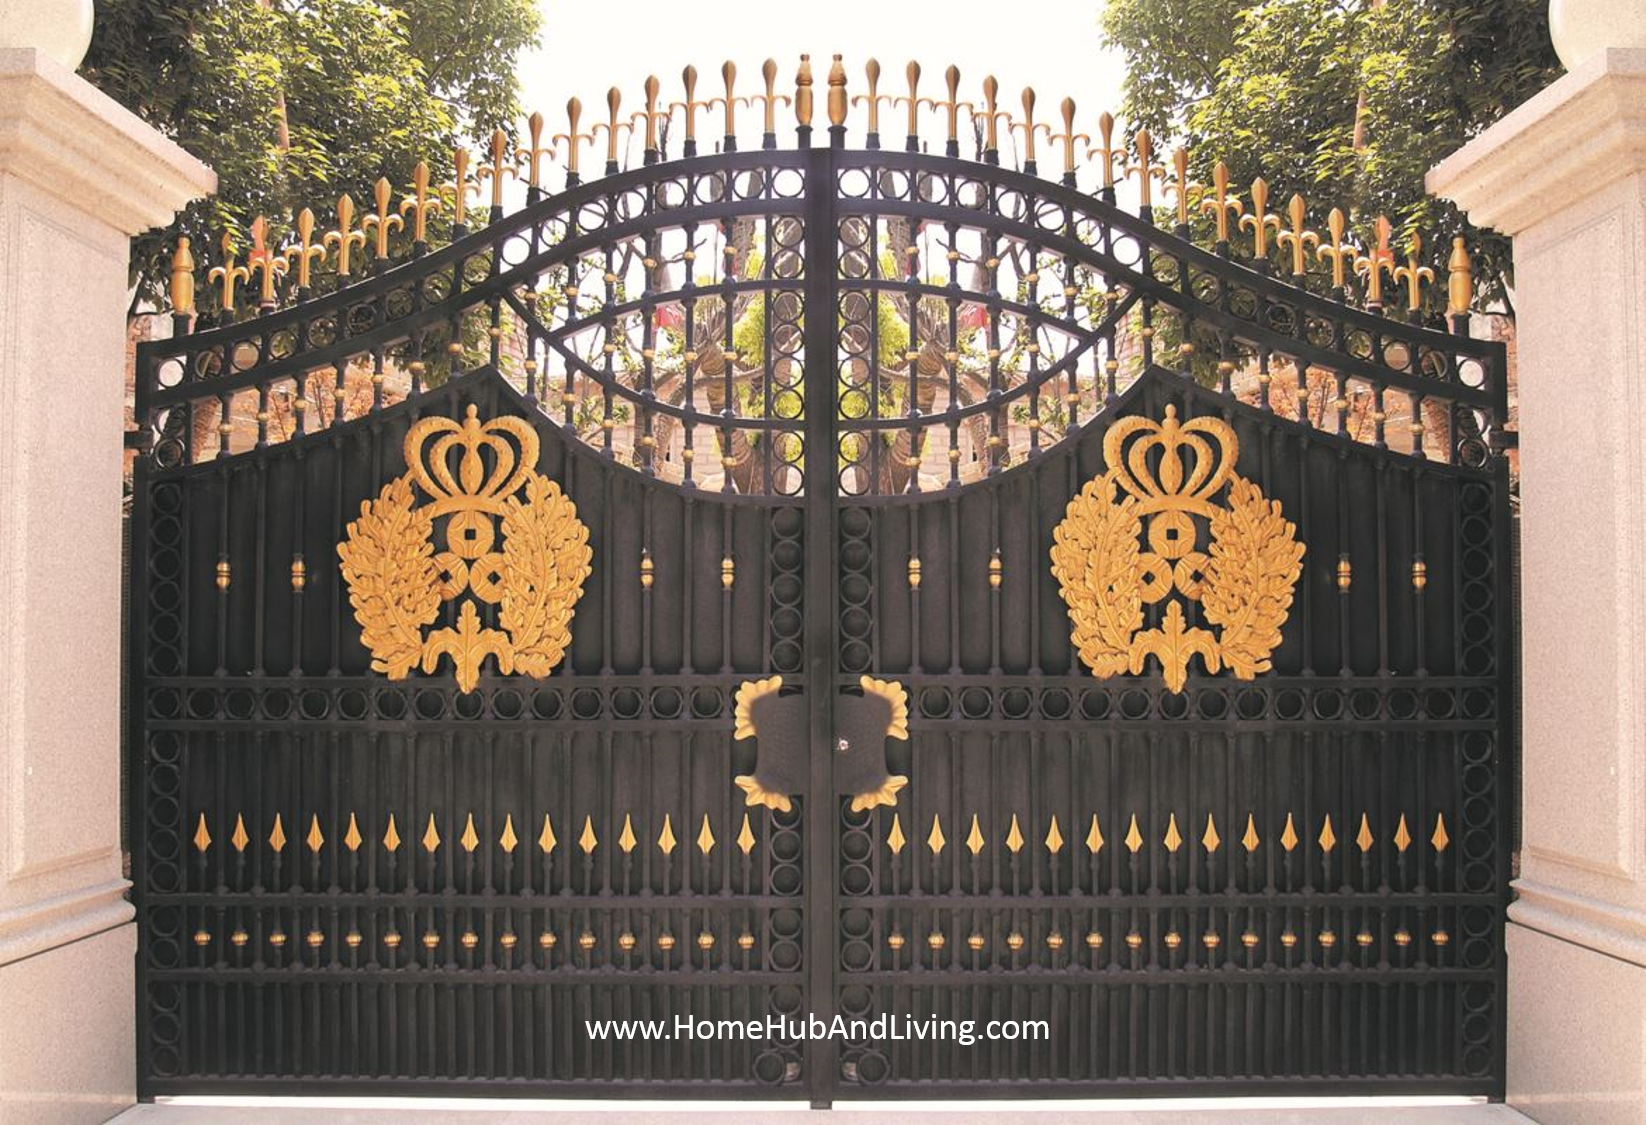 Grand Entrance French design wrought iron Gate FZY TM024 Stainless Steel Front Gate Door for Private Apartment and Houses, DBSS and HDB: Customise Designs with Embedded Marble